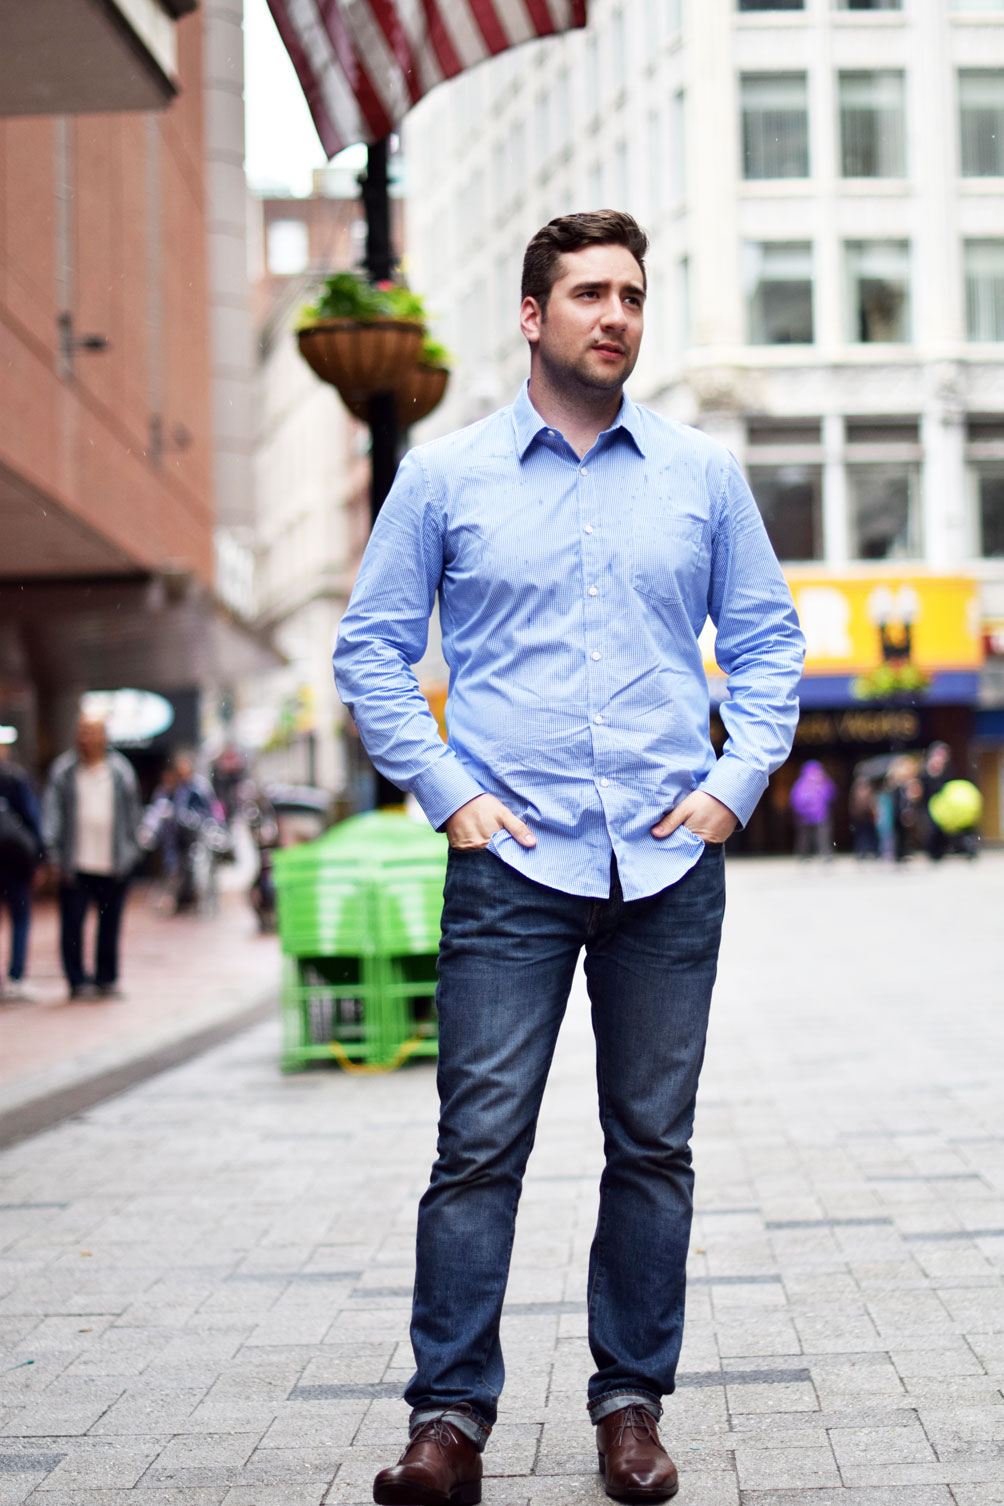 Leslie Musser of one brass fox talks men's spring fashion with brown leather oxfords, a button-down, and relaxed denim - a gentle(man) friday